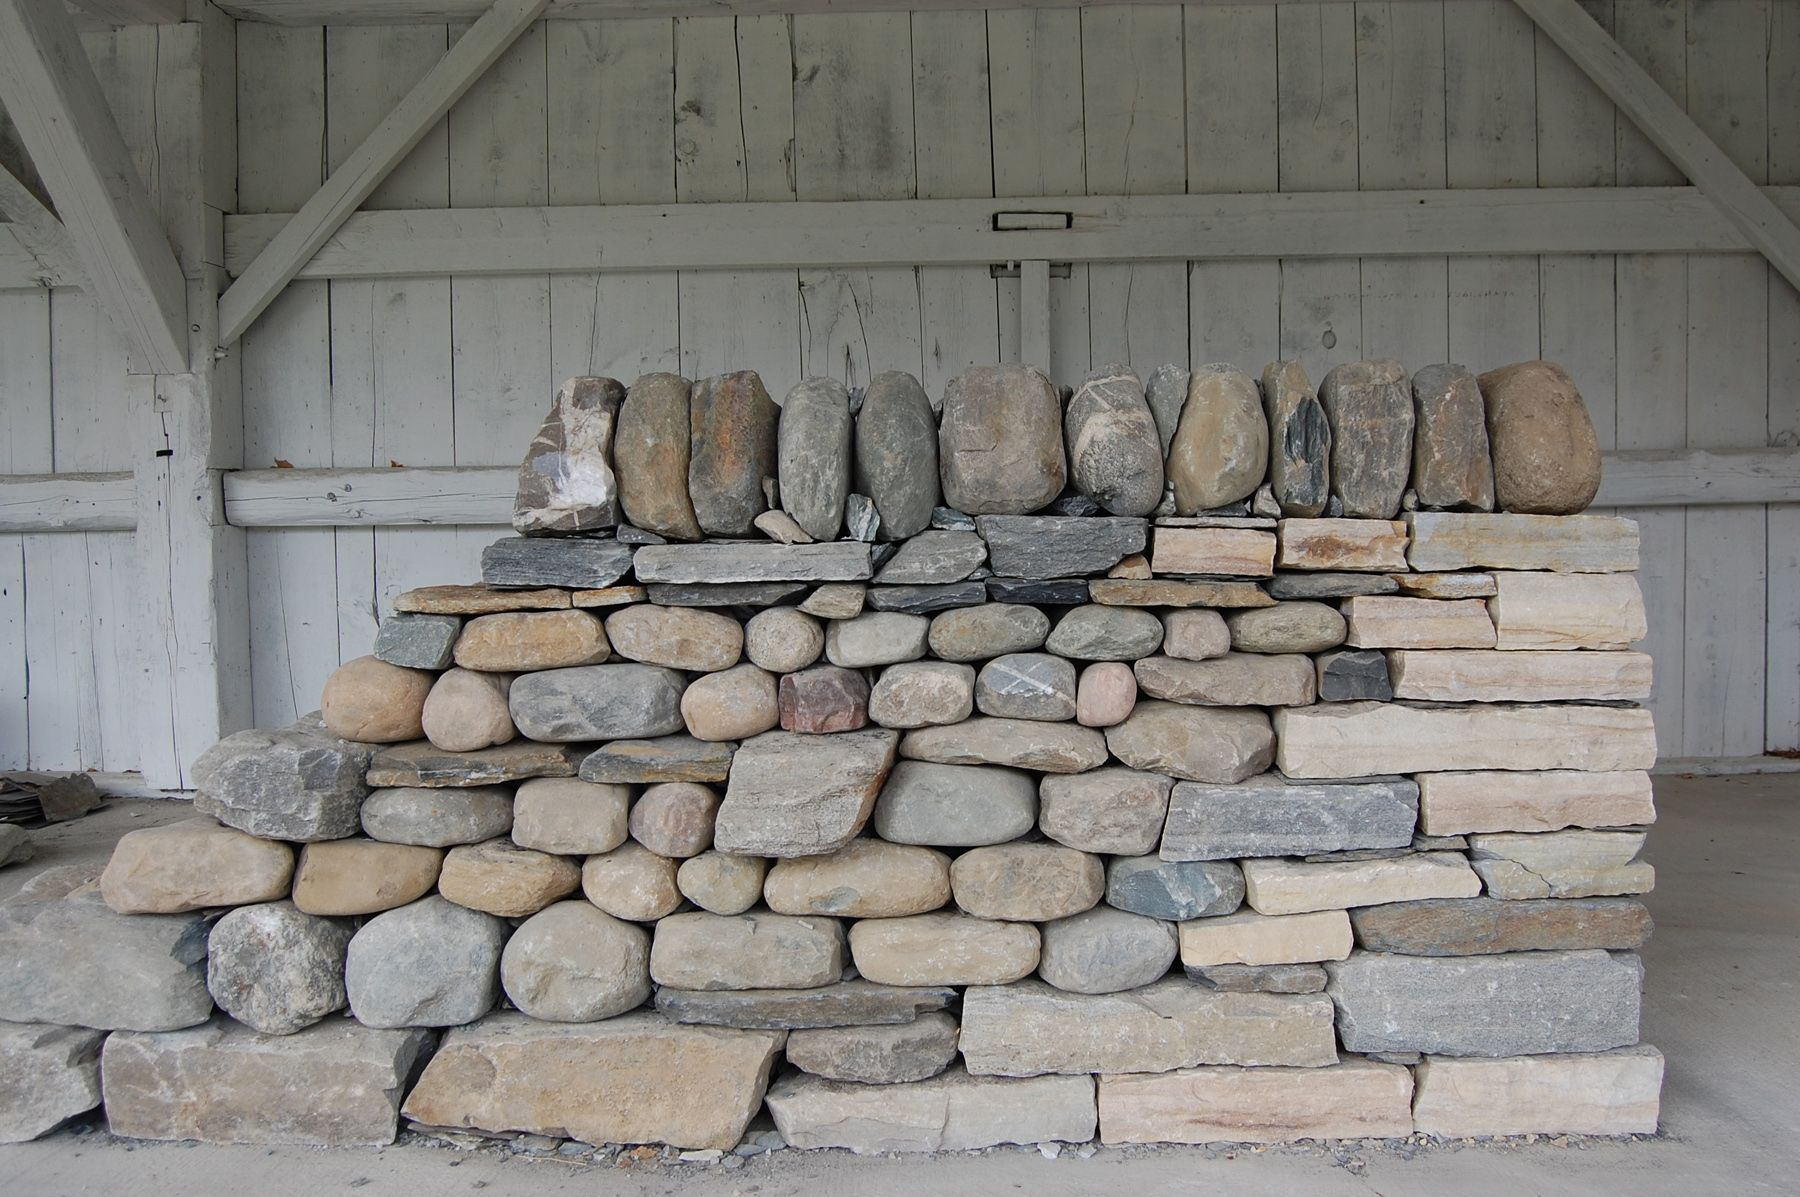 rock wall | STONE WALL BUILDING WORKSHOP AT SHELBURNE MUSEUM ...